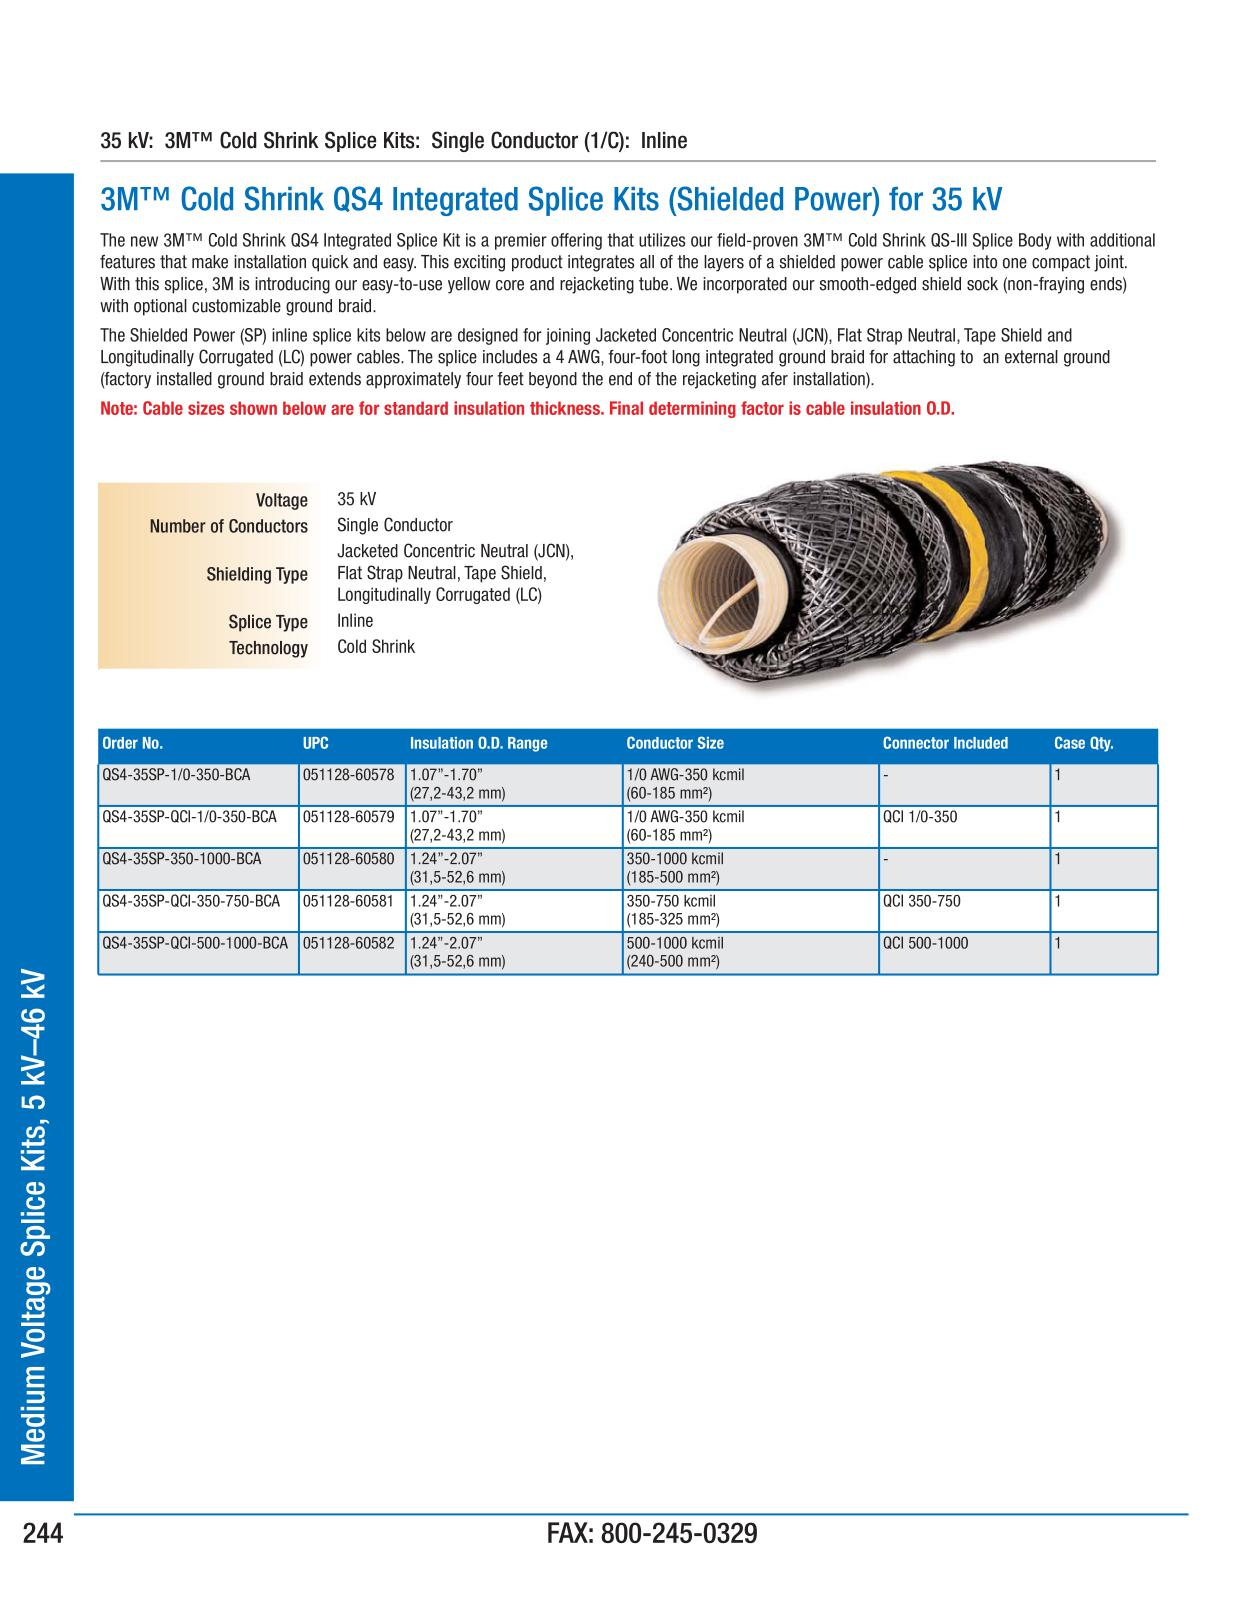 3m electrical products page 244 medium voltage splice kits 5 kv 3m electrical products page 244 medium voltage splice kits 5 kv 46 kv greentooth Gallery